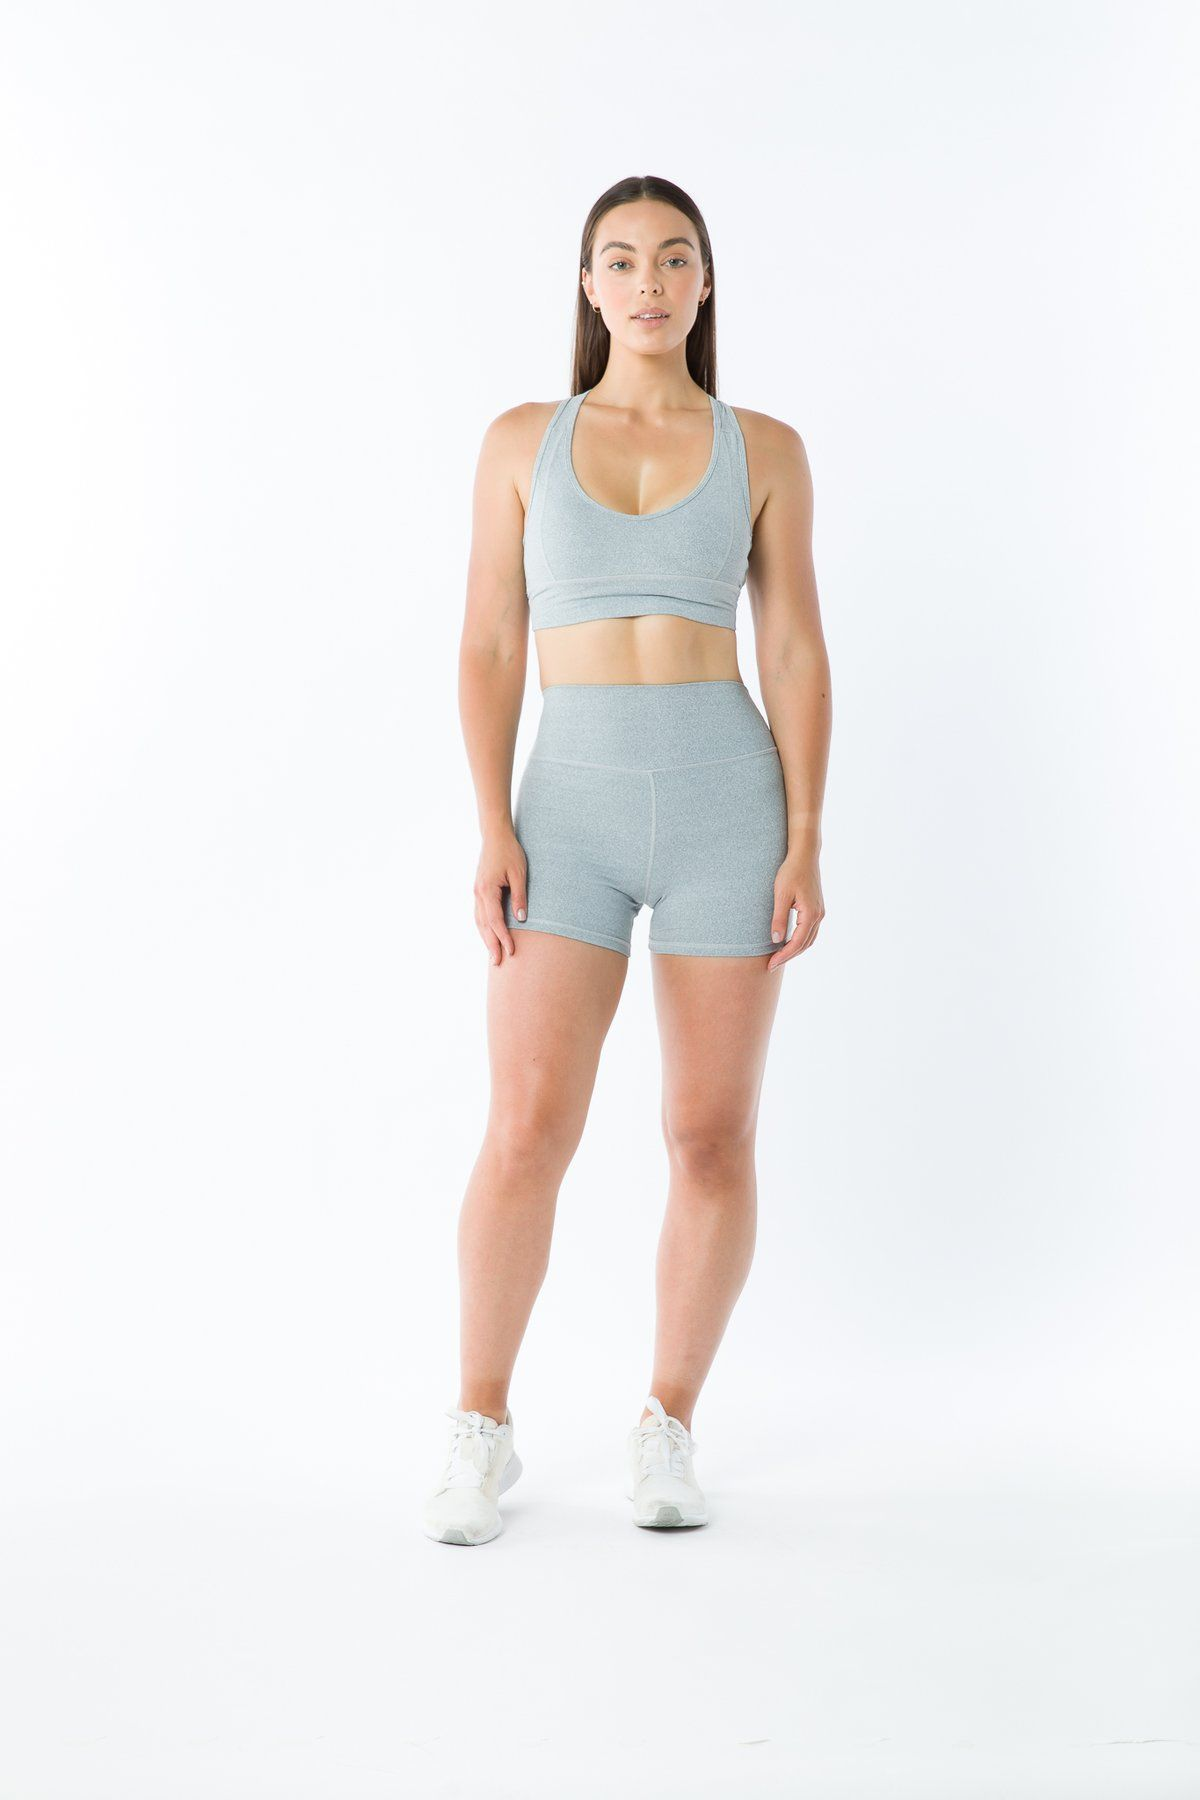 Kynd 01 Sports Bra - Grey Marle